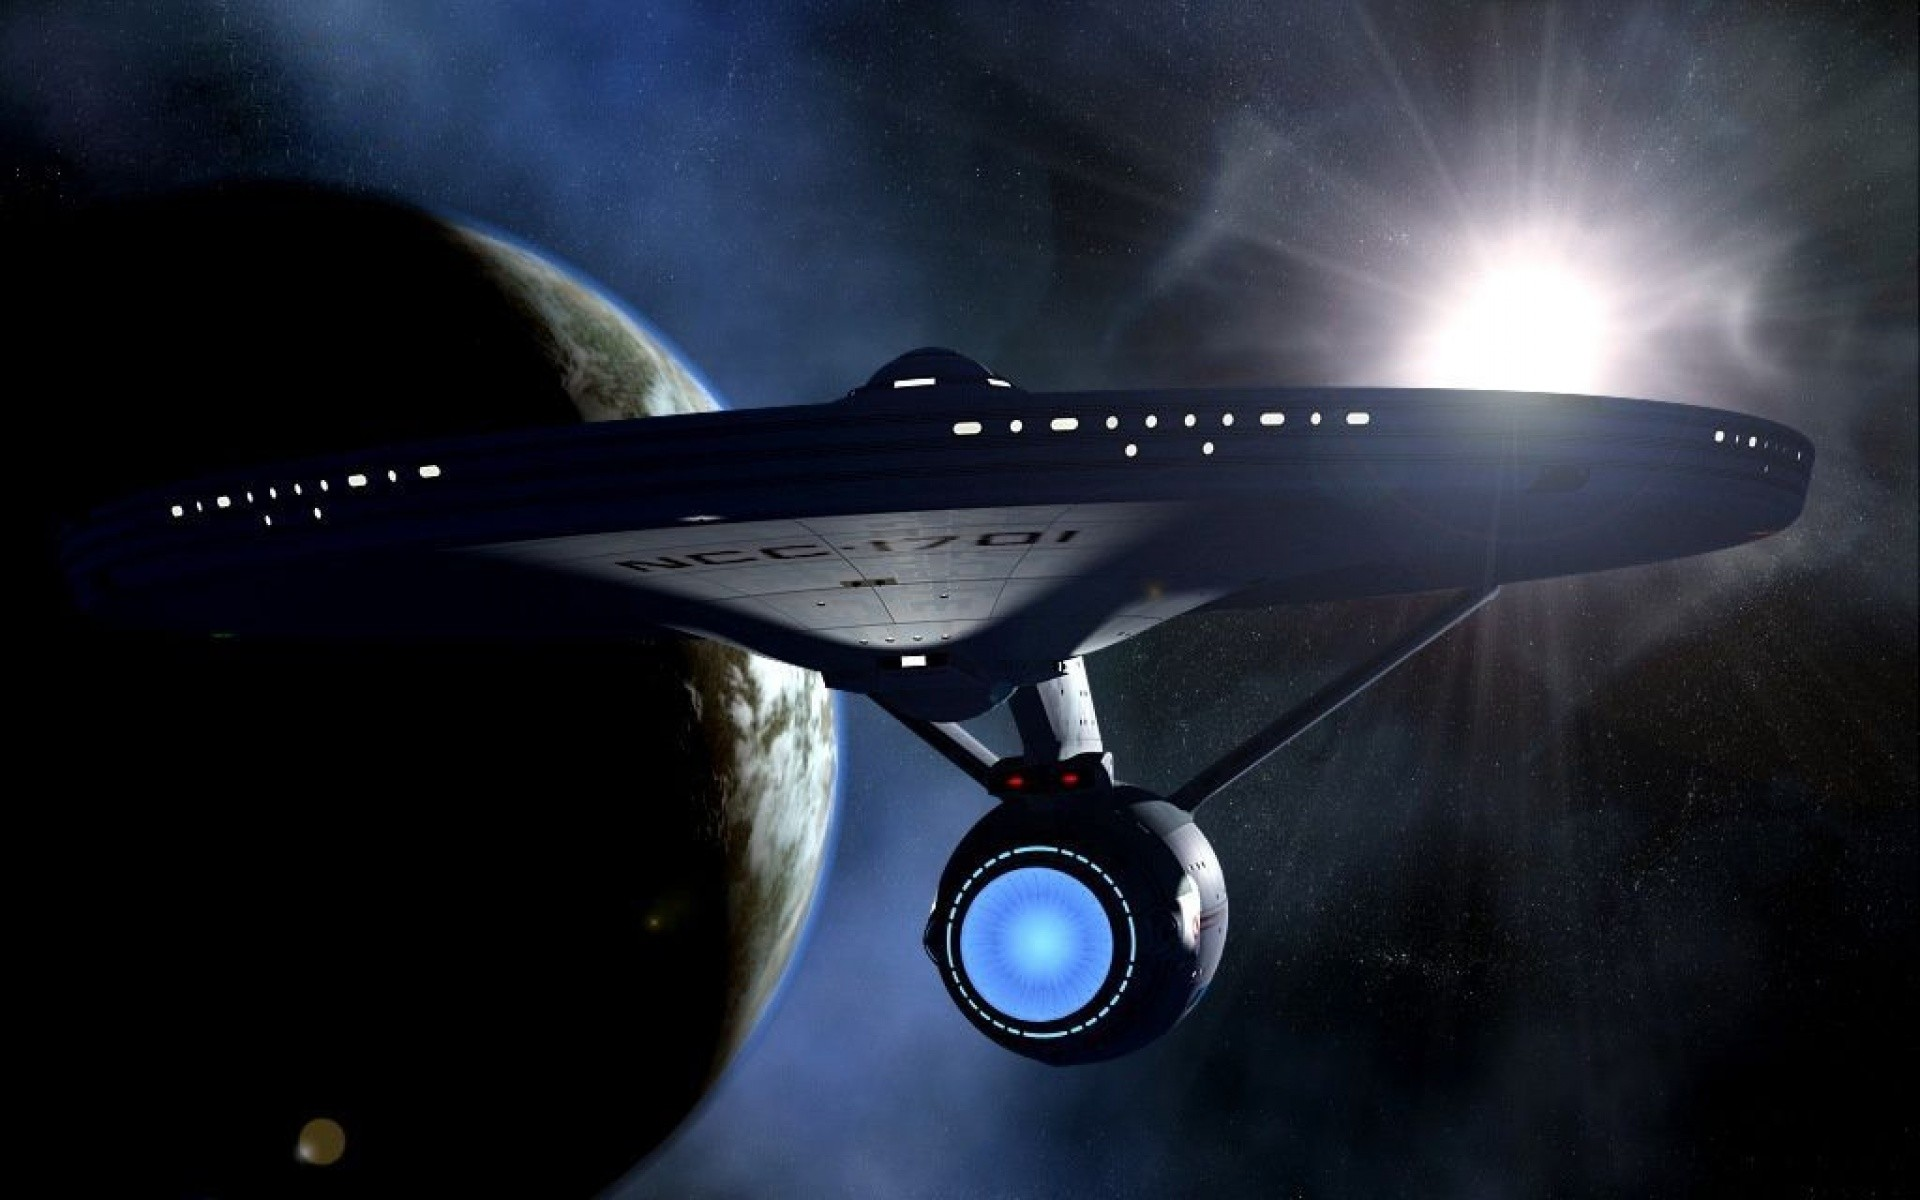 1920x1200 Star Trek Online 1920x1200 Wallpapers, 1920x1200 Wallpapers & Pictures .